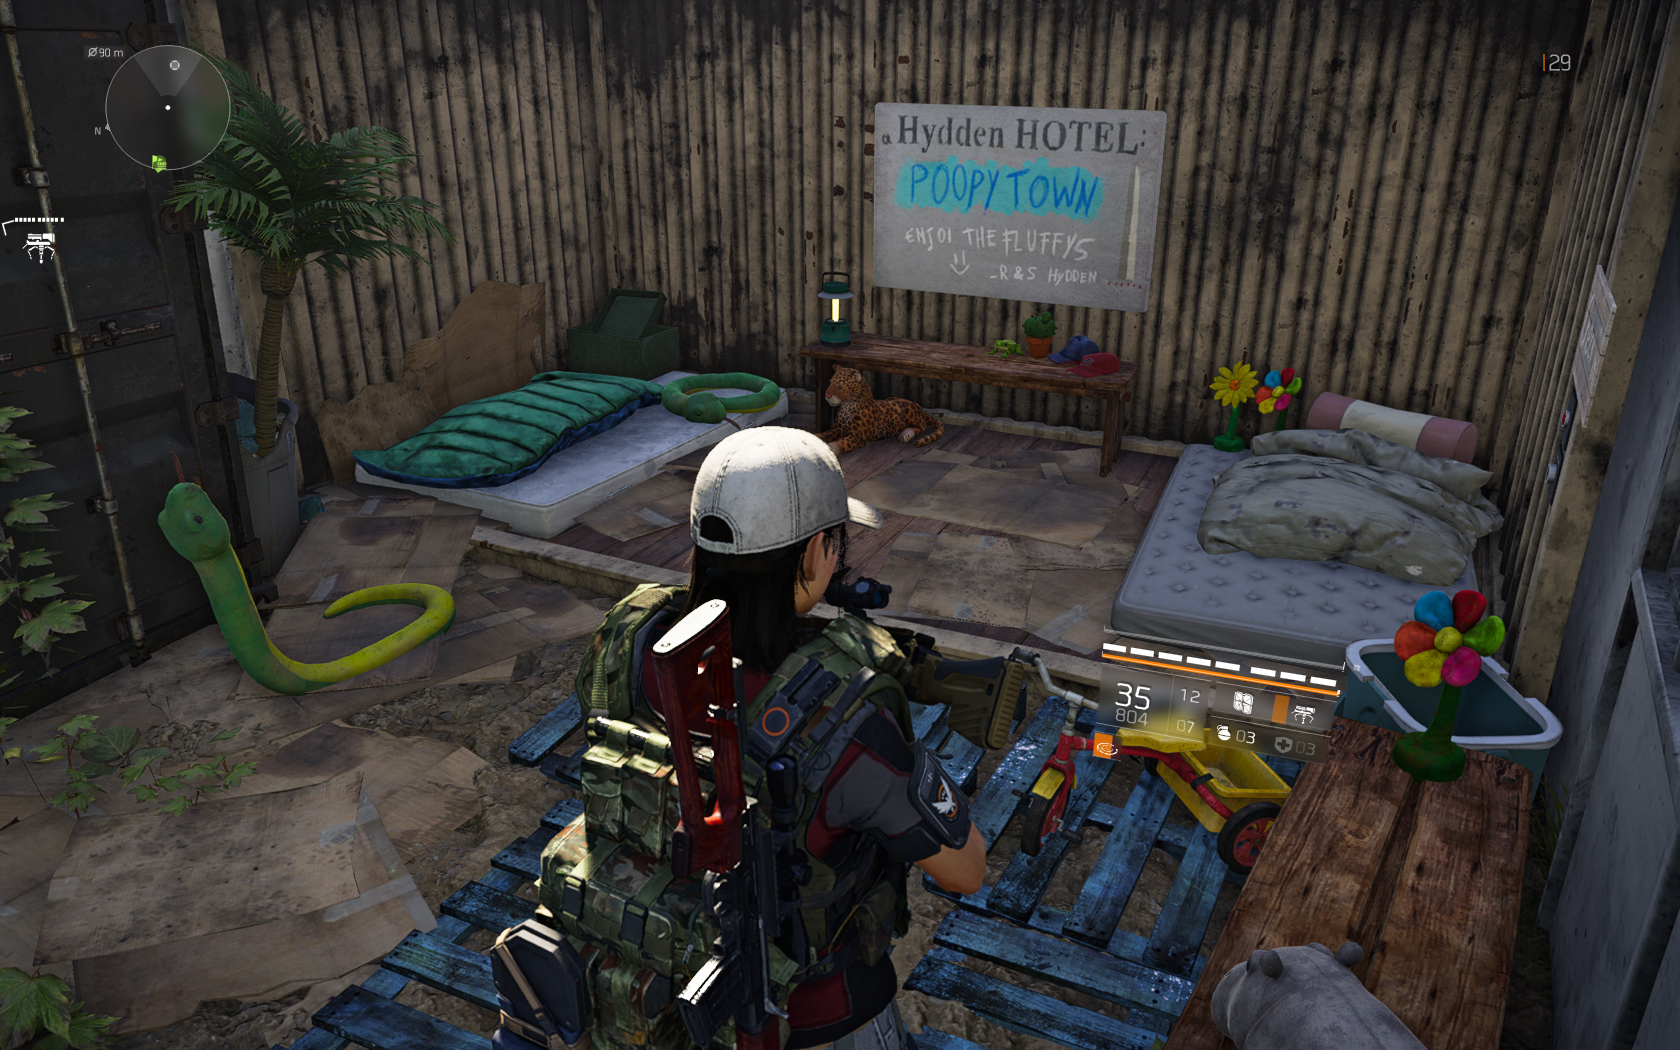 Tom Clancy's The Division 2 Screenshot 2019.03.20 - 10.08.17.09 - Copy.png